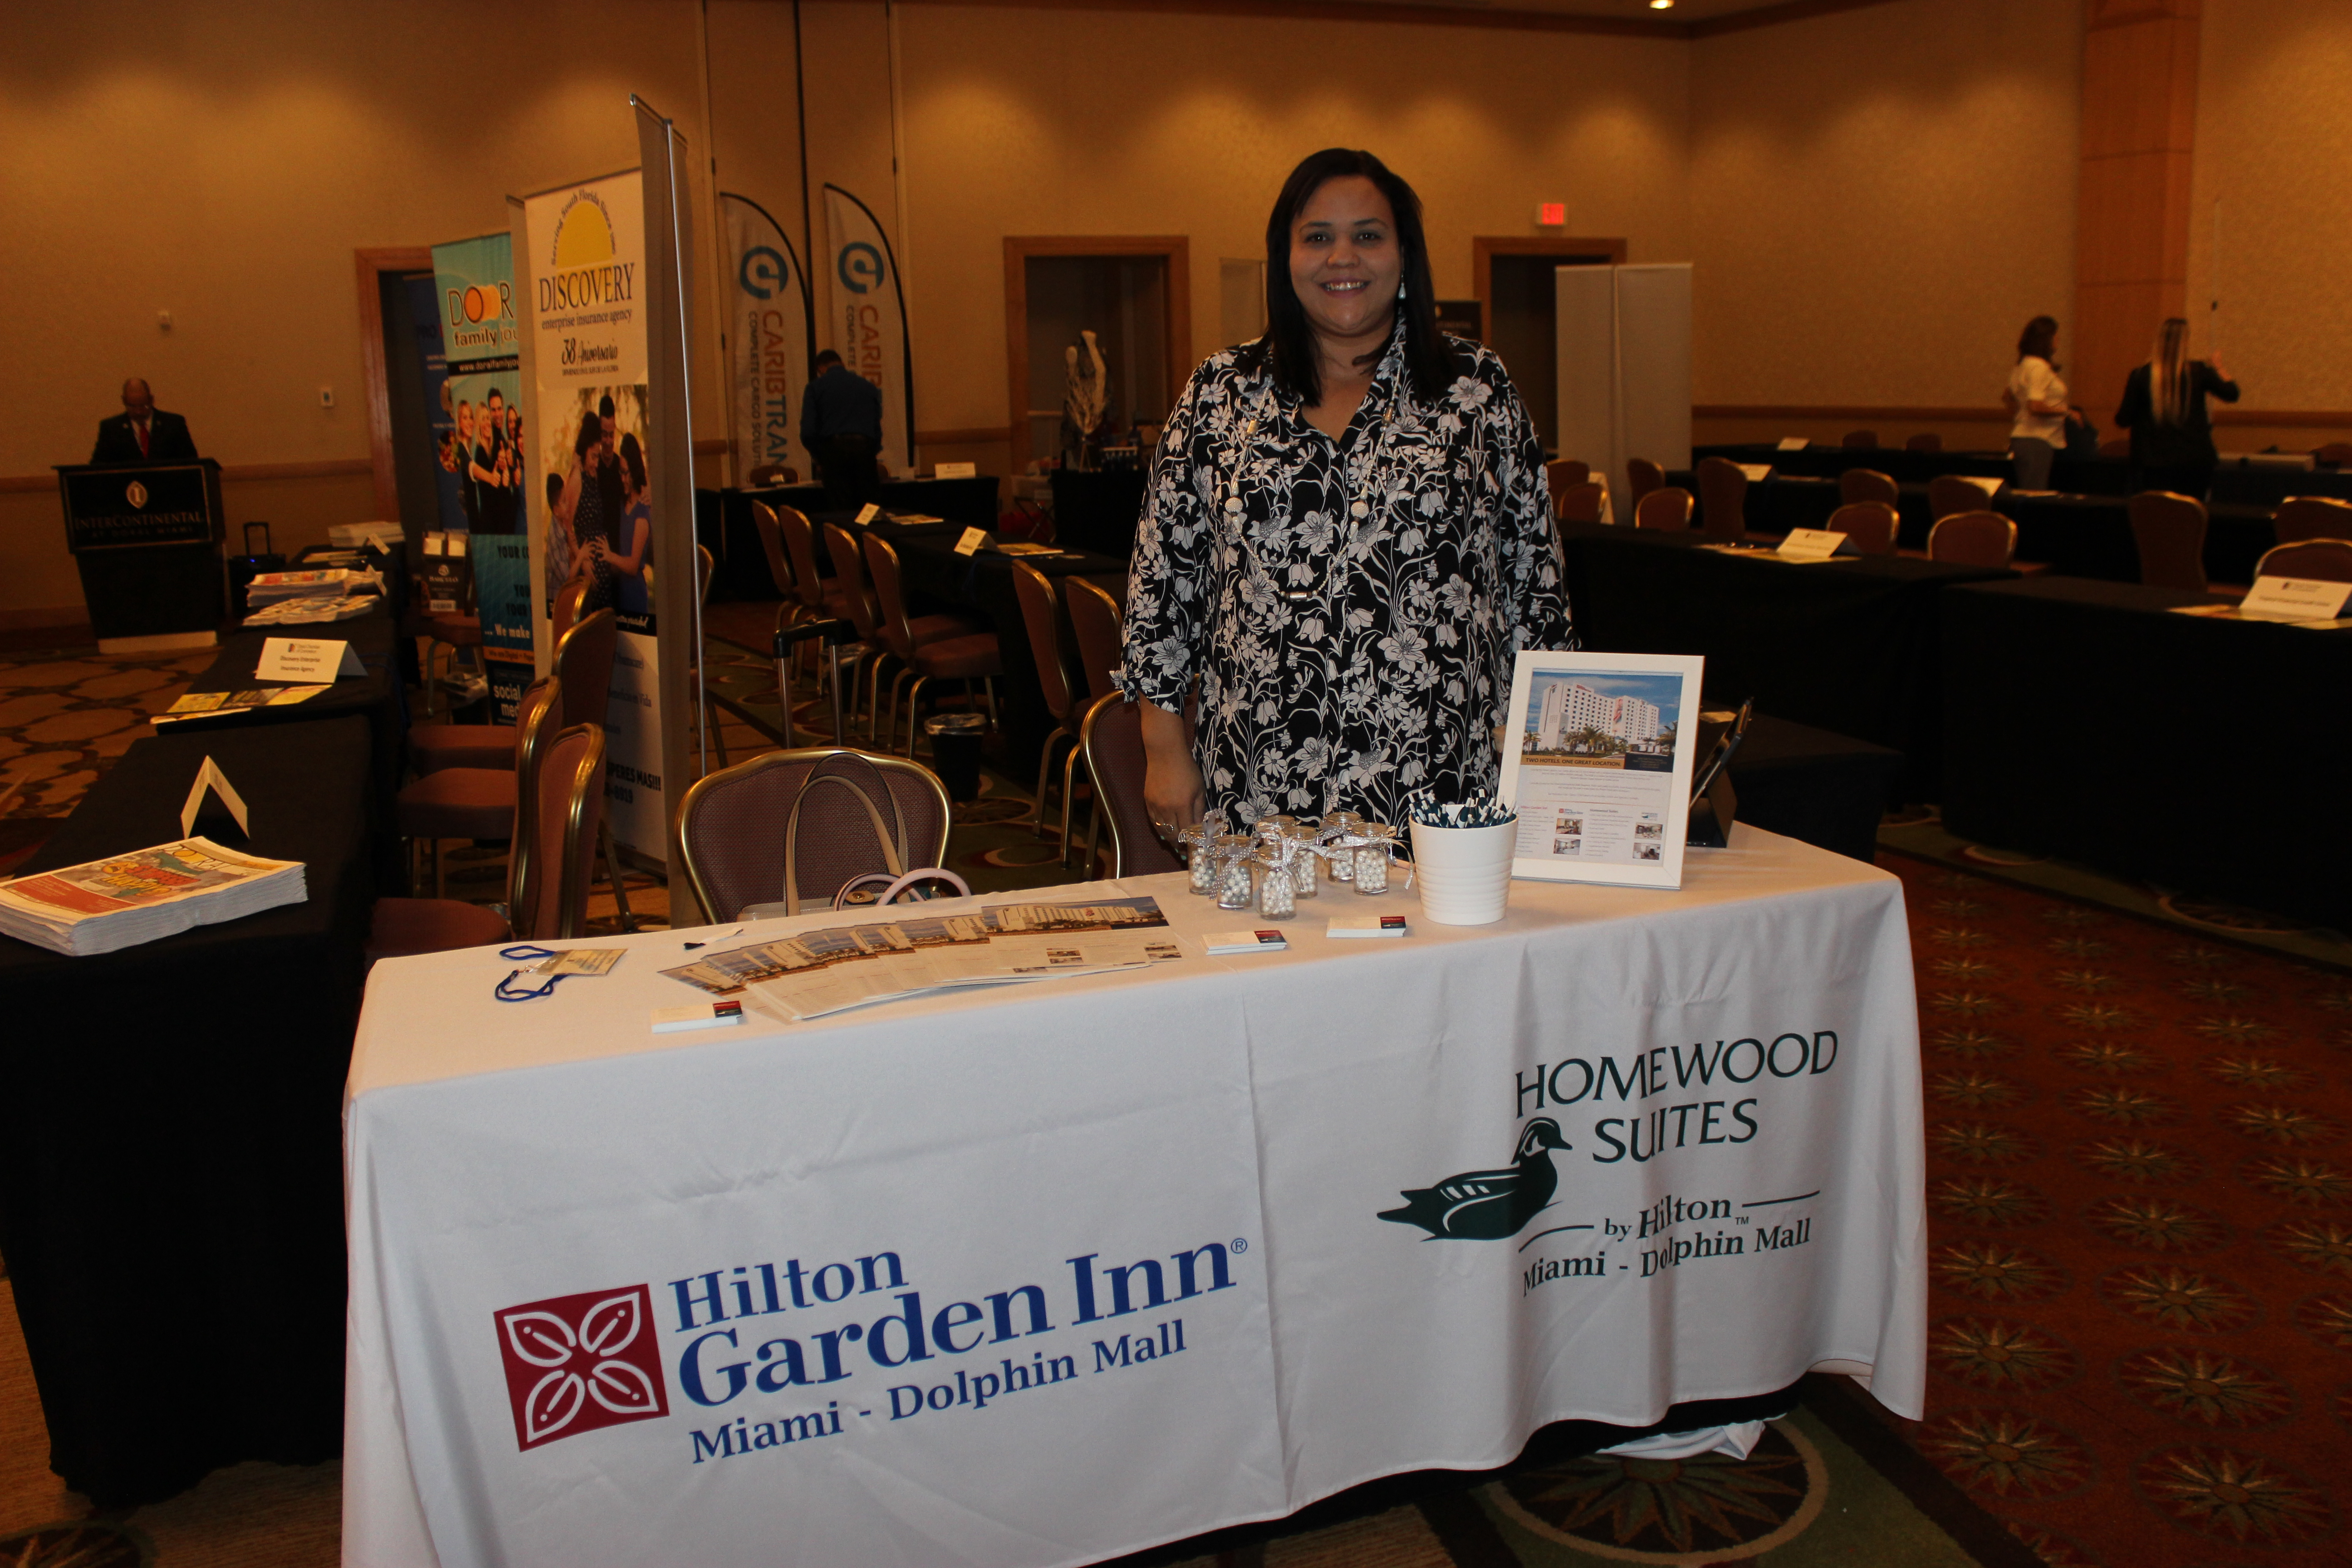 Hilton Garden Inn and Homewood Suites representing business in ExpoMiami 2018 hosted by the Doral Chamber of Commerce.